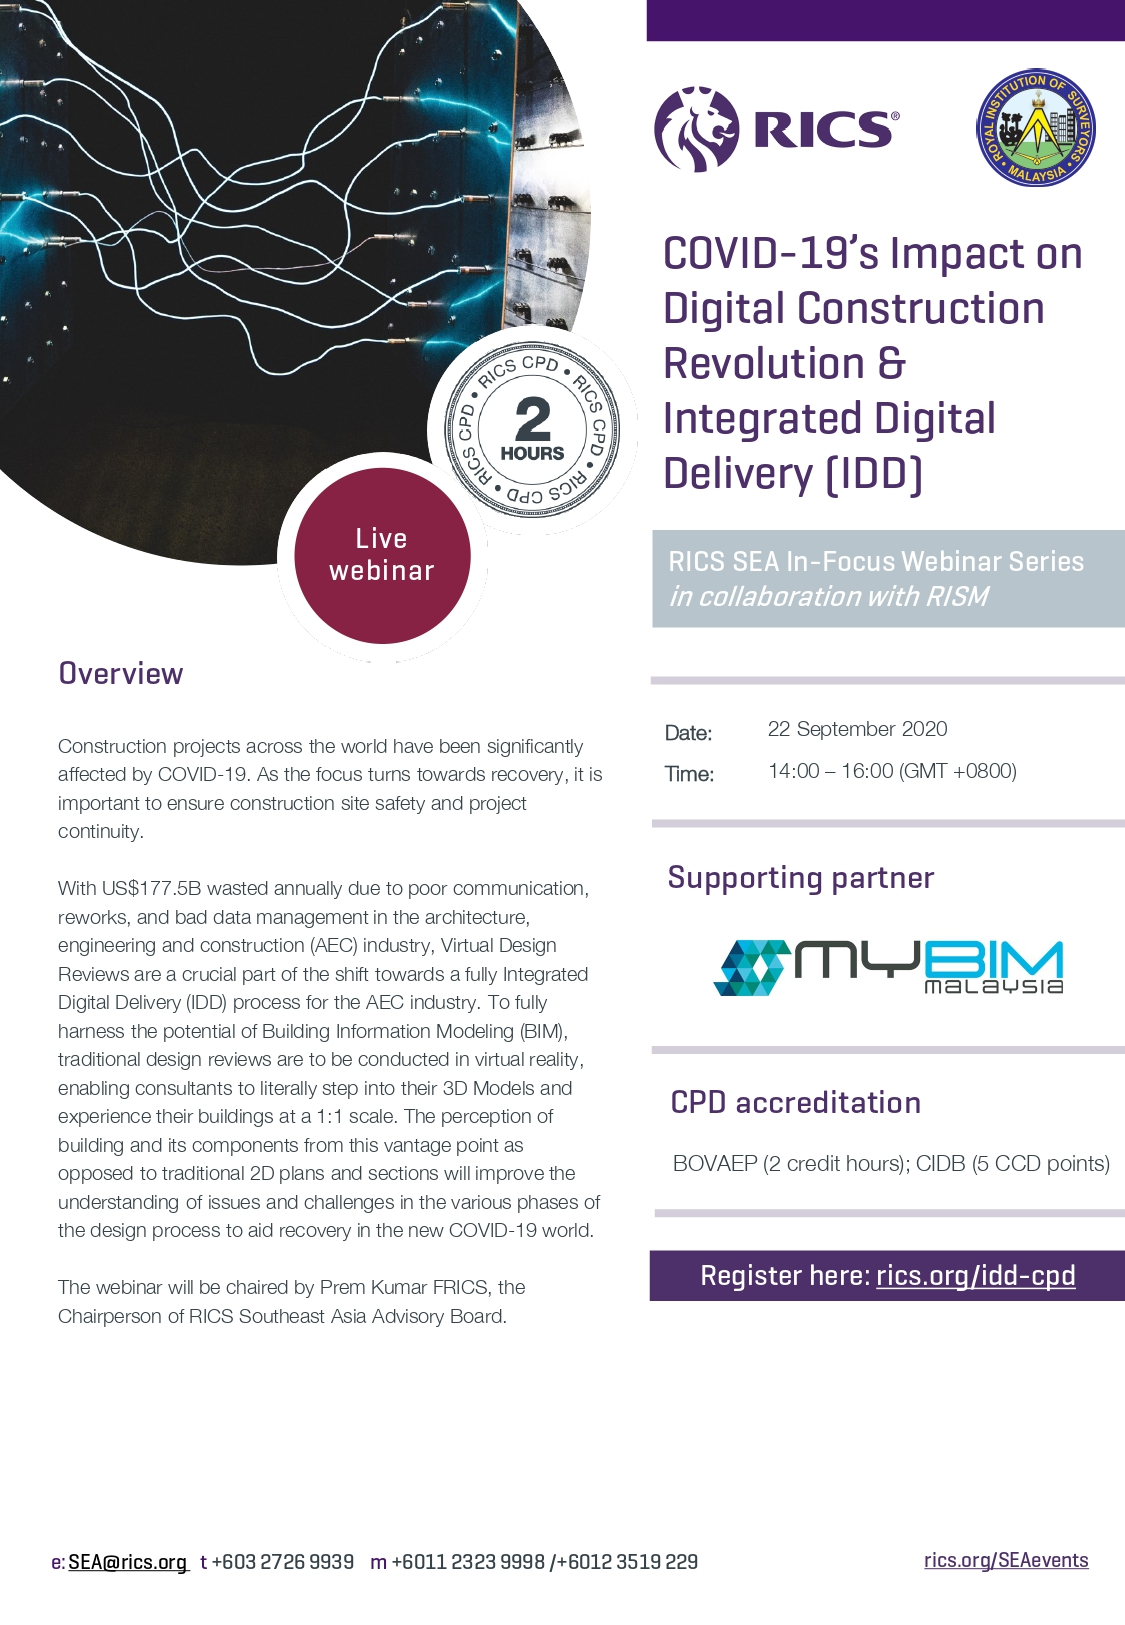 [RICS] COVID-19's Impact on Digital Construction Revolution & Integrated Digital Delivery (IDD)